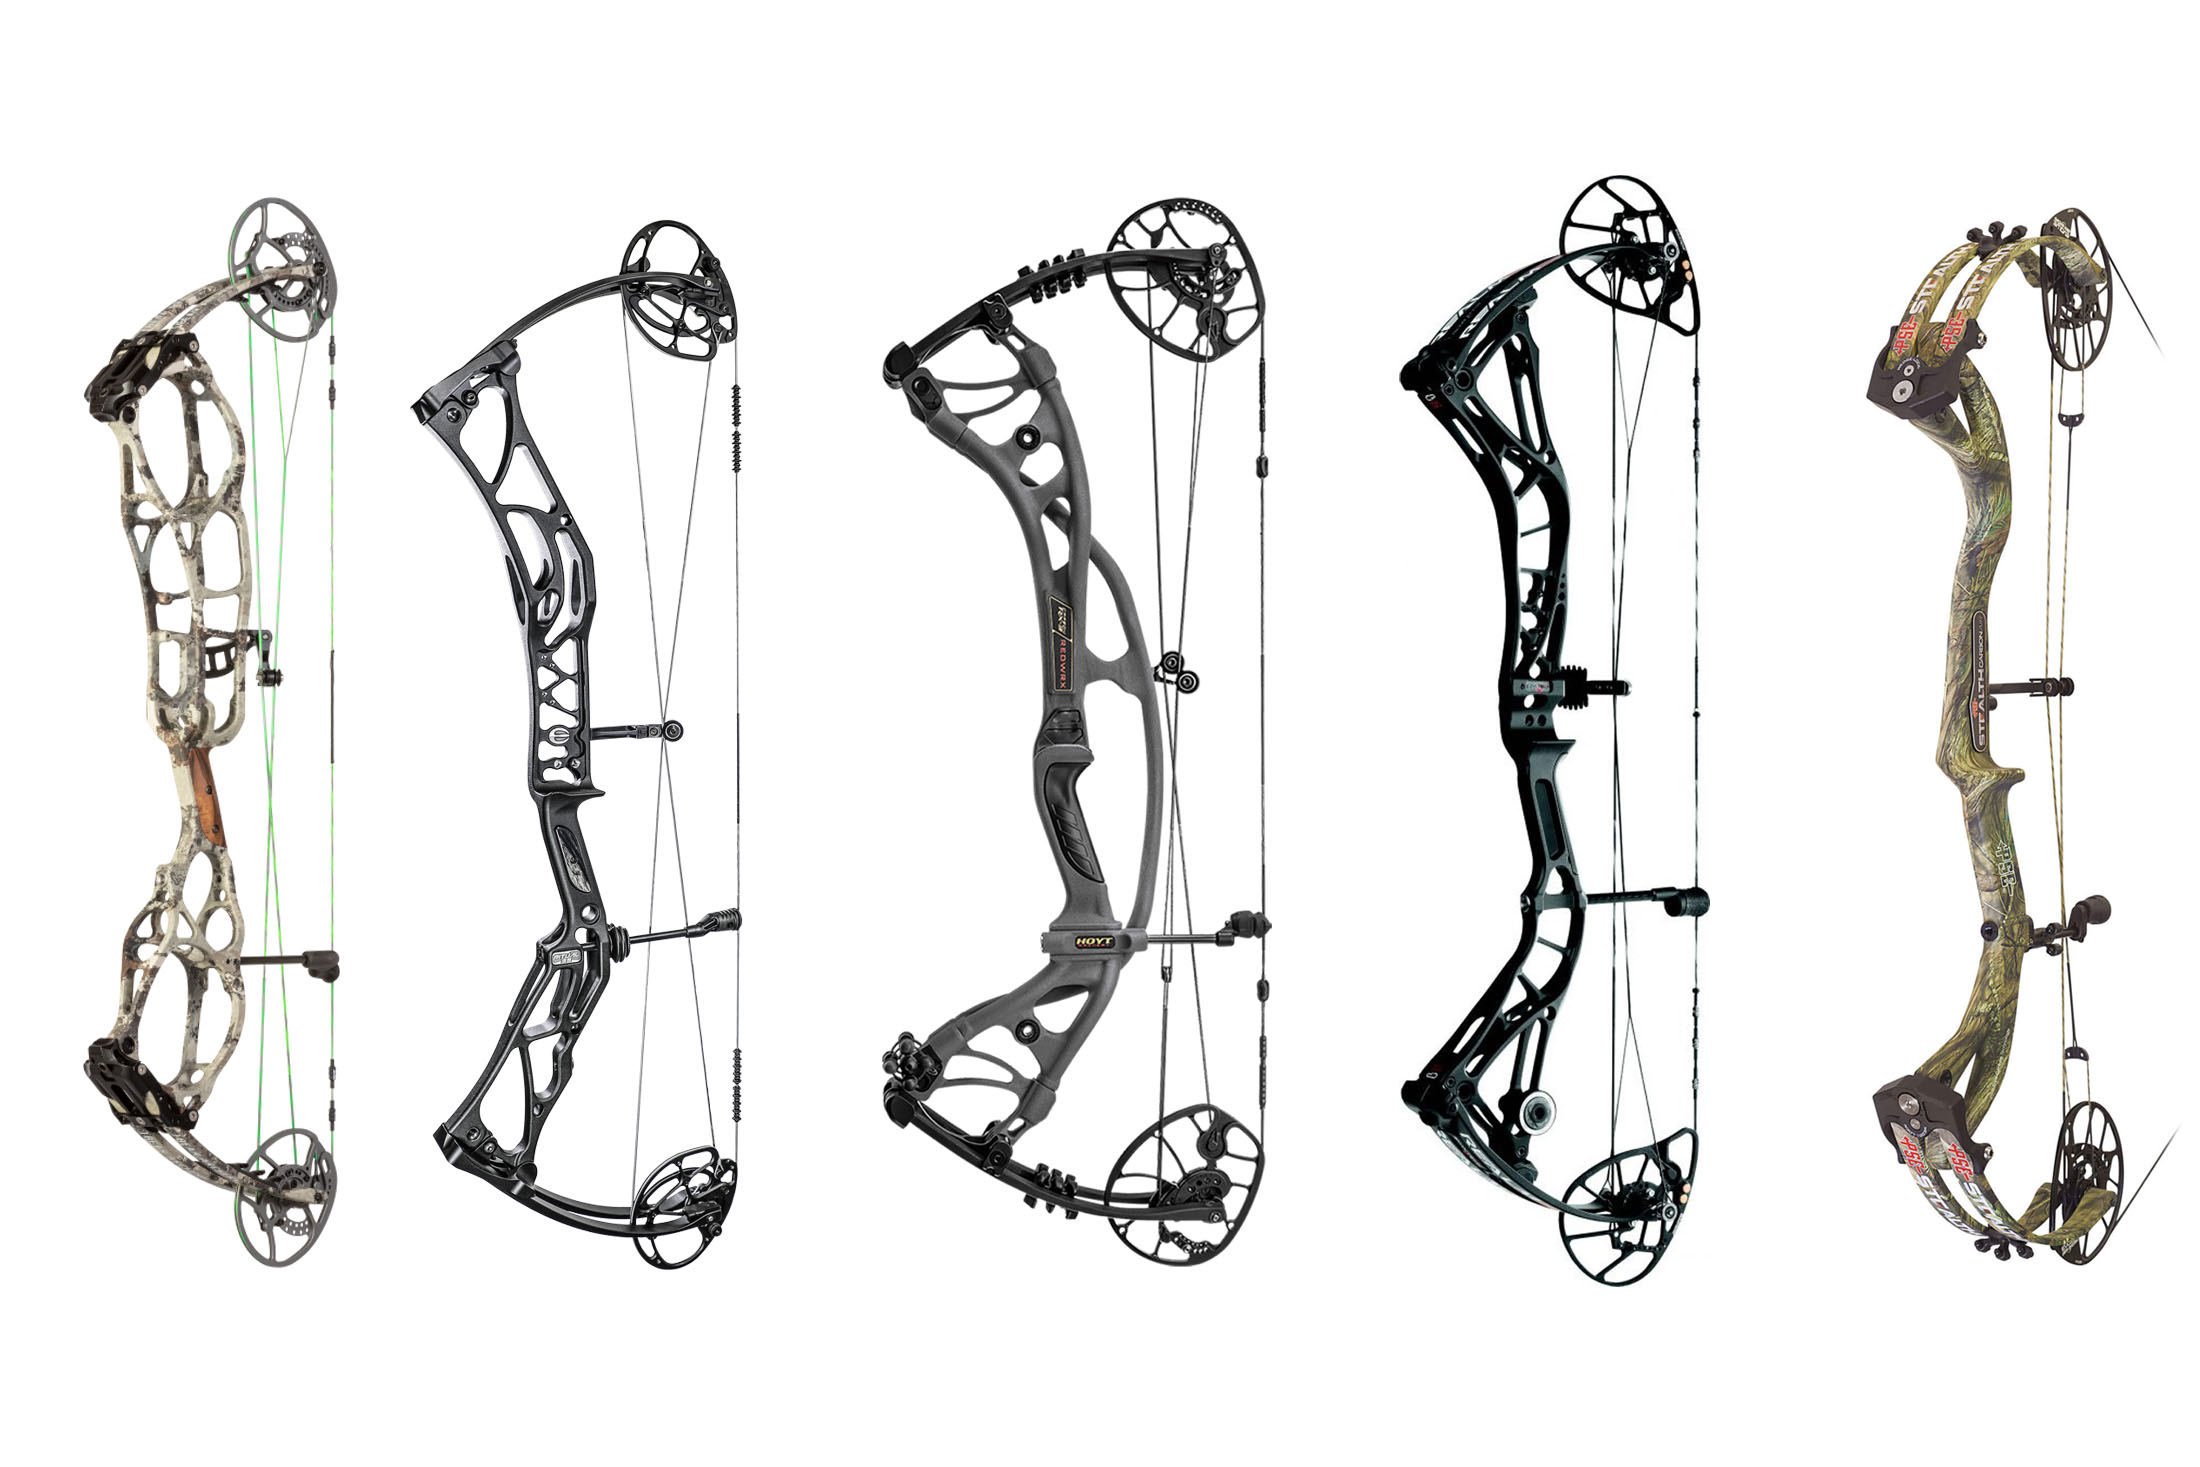 Best Hunting Compound Bow 2020 Best Bows of 2019: Top Flagship Compounds From ATA | GearJunkie